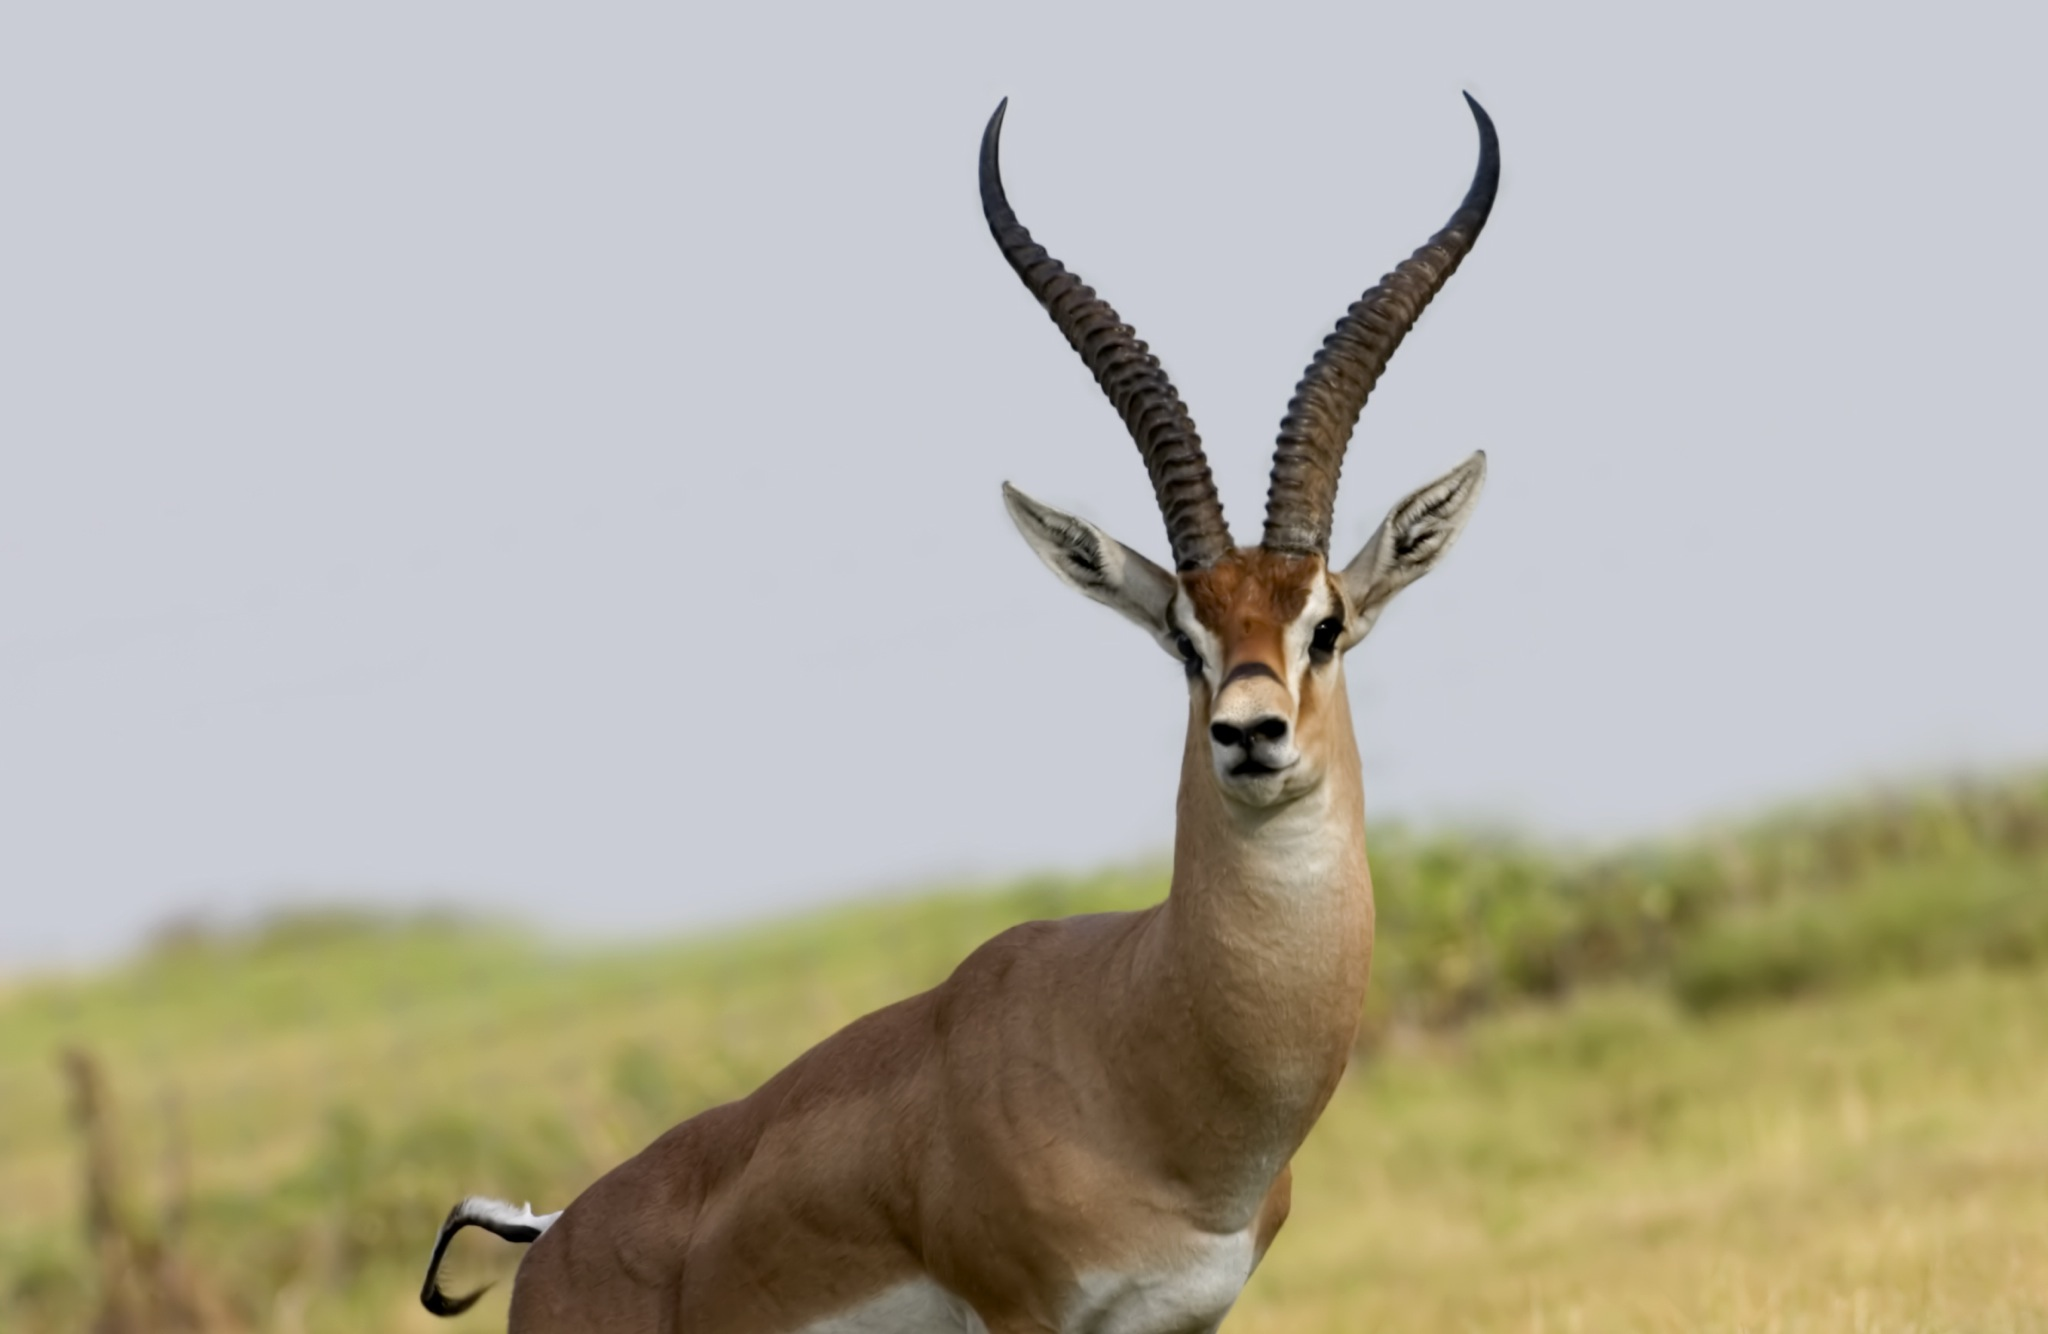 Gazelle with Long Horns 1225.31 Kb